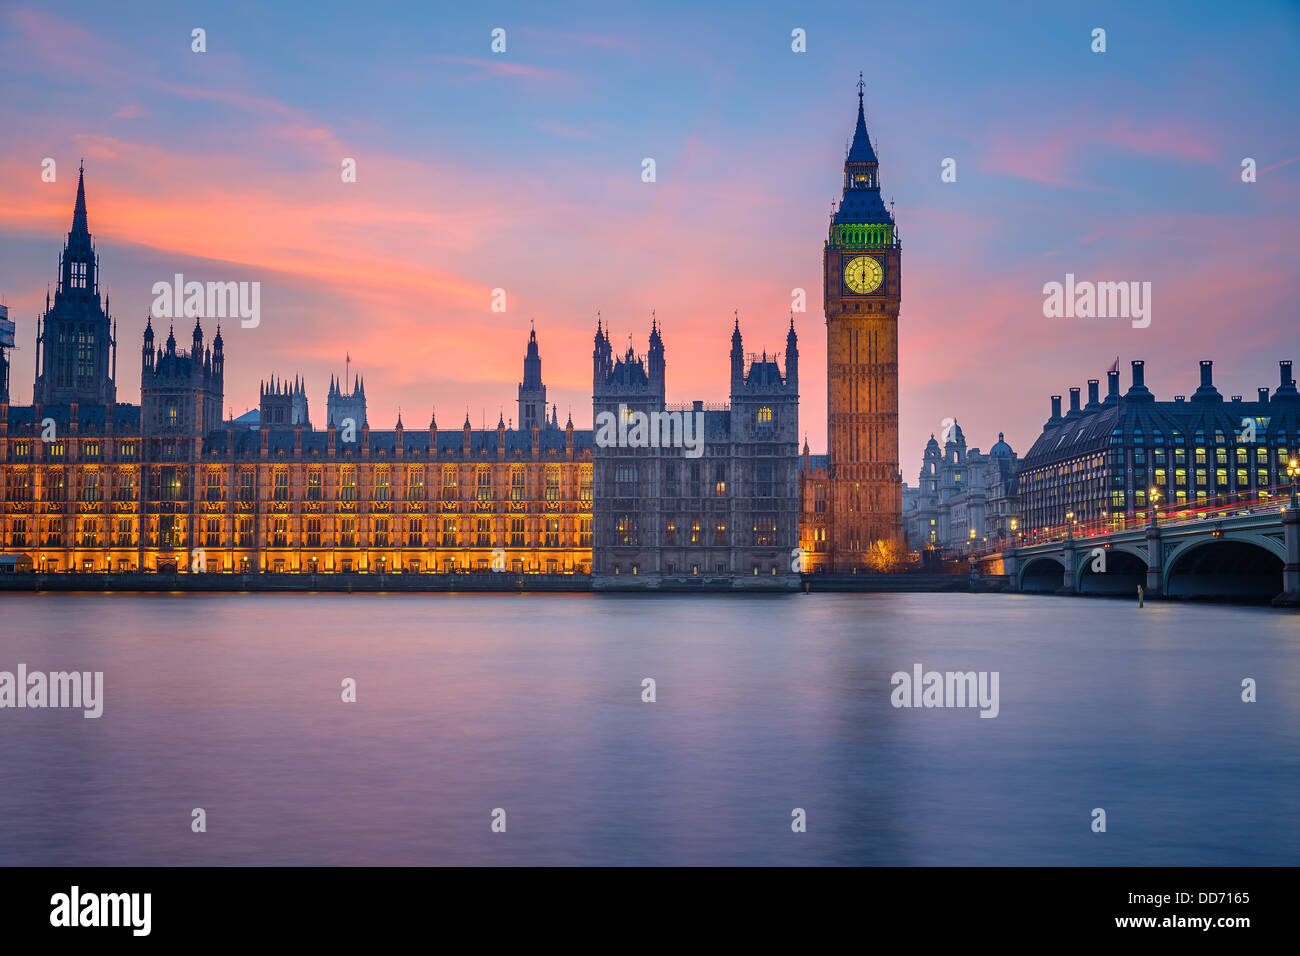 Houses of parliament at night, London - Stock Image